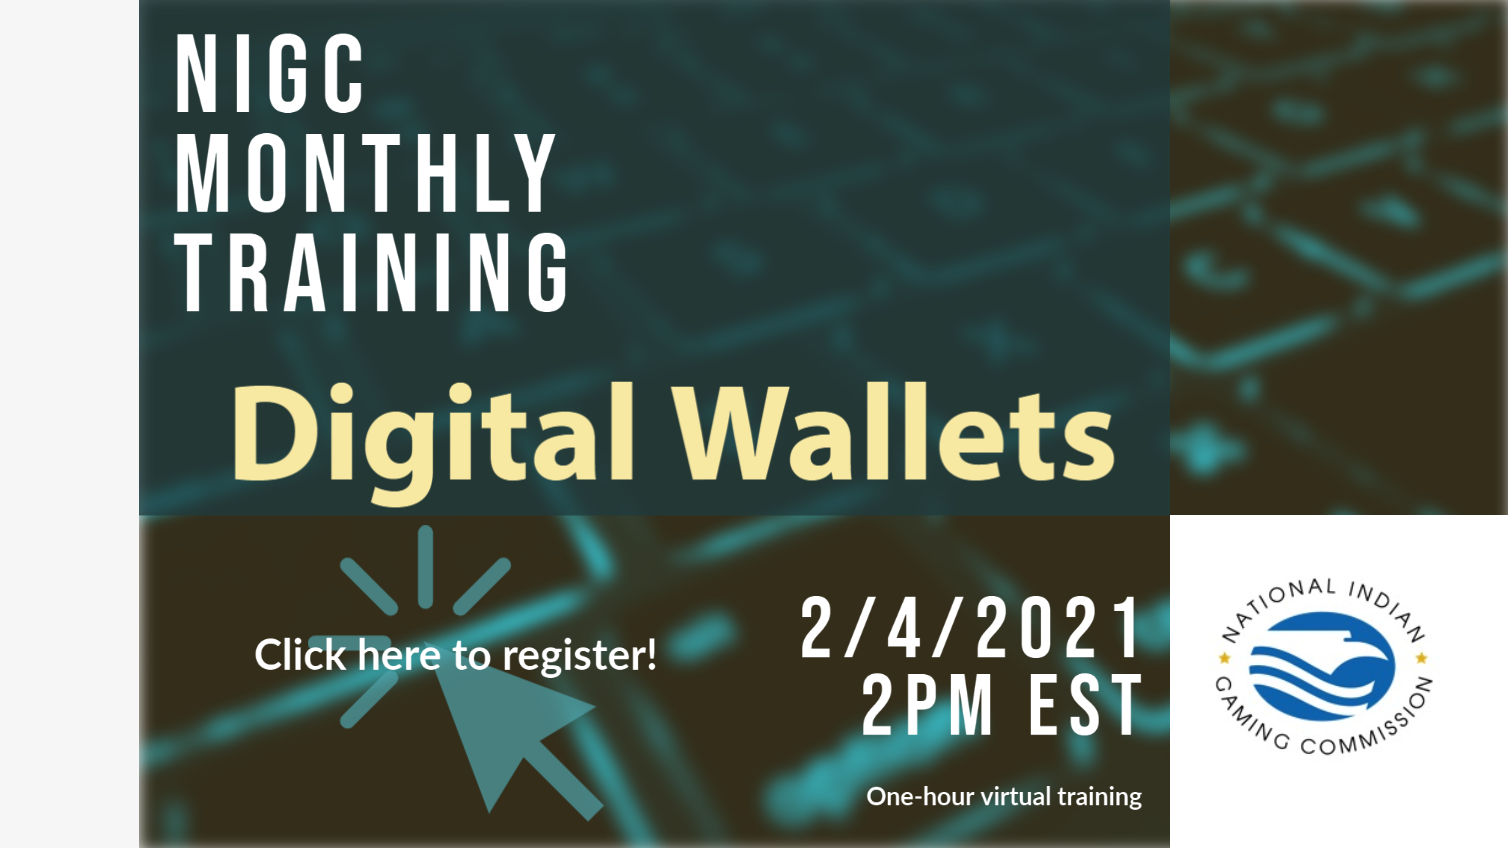 NIGC Monthly Training - Digital Wallets